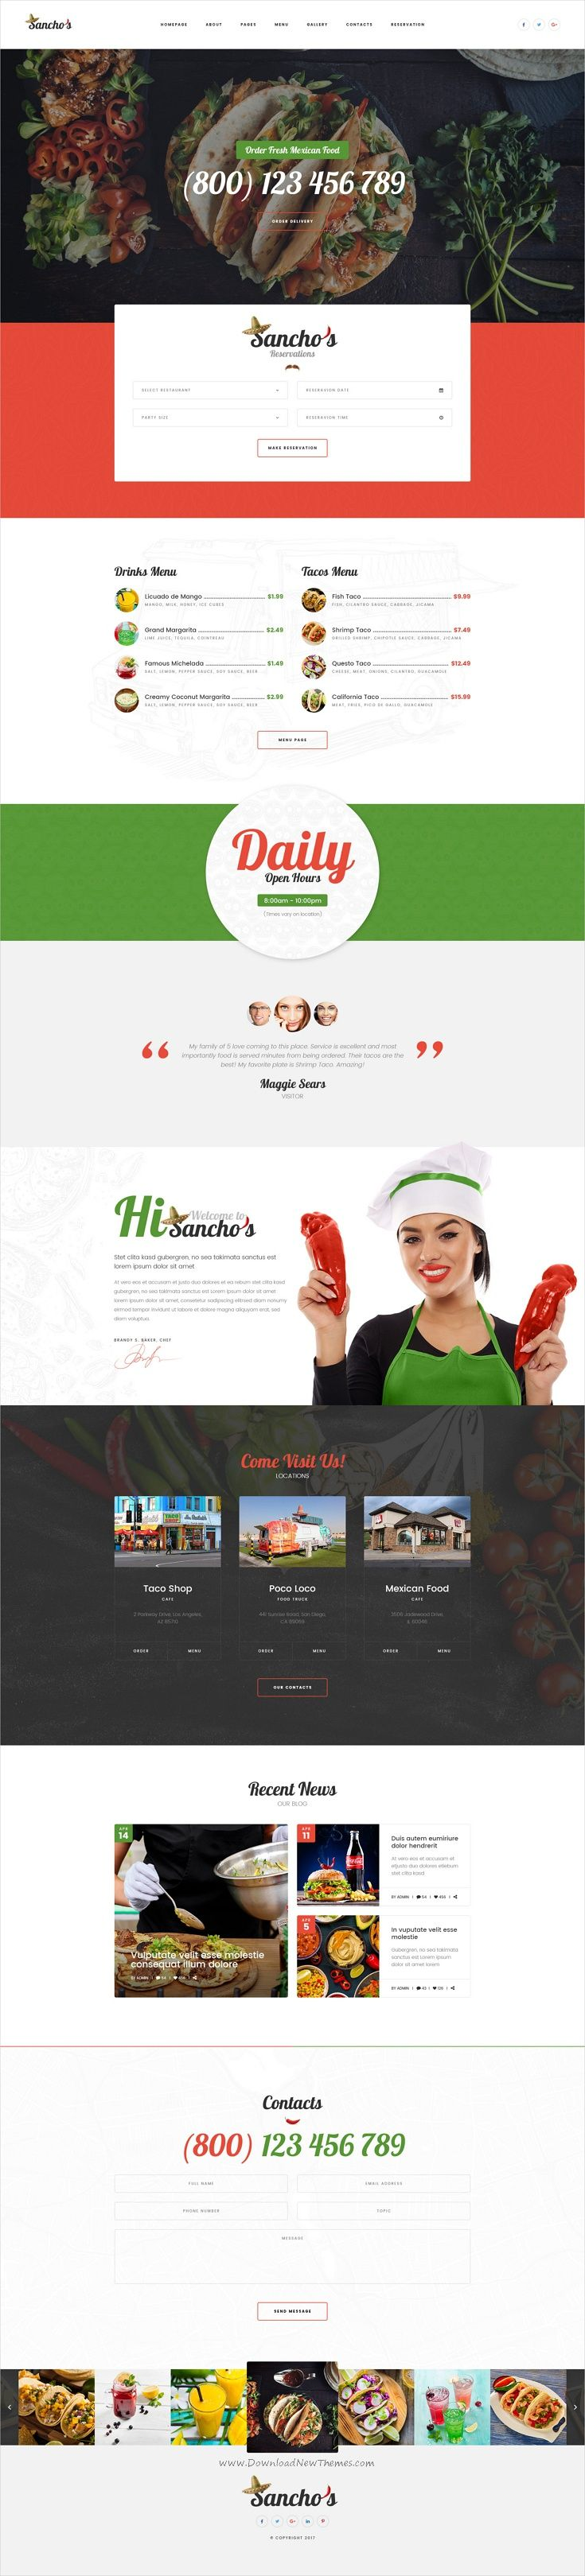 Sancho is clean and modern design #PSD template perfect for #Mexican #food #restaurant, cafe or catering service website with 18+ layered PSD files download now➩ https://themeforest.net/item/sanchos-mexican-food-restaurant-and-delivery-service-psd-template/19838121?ref=Datasata